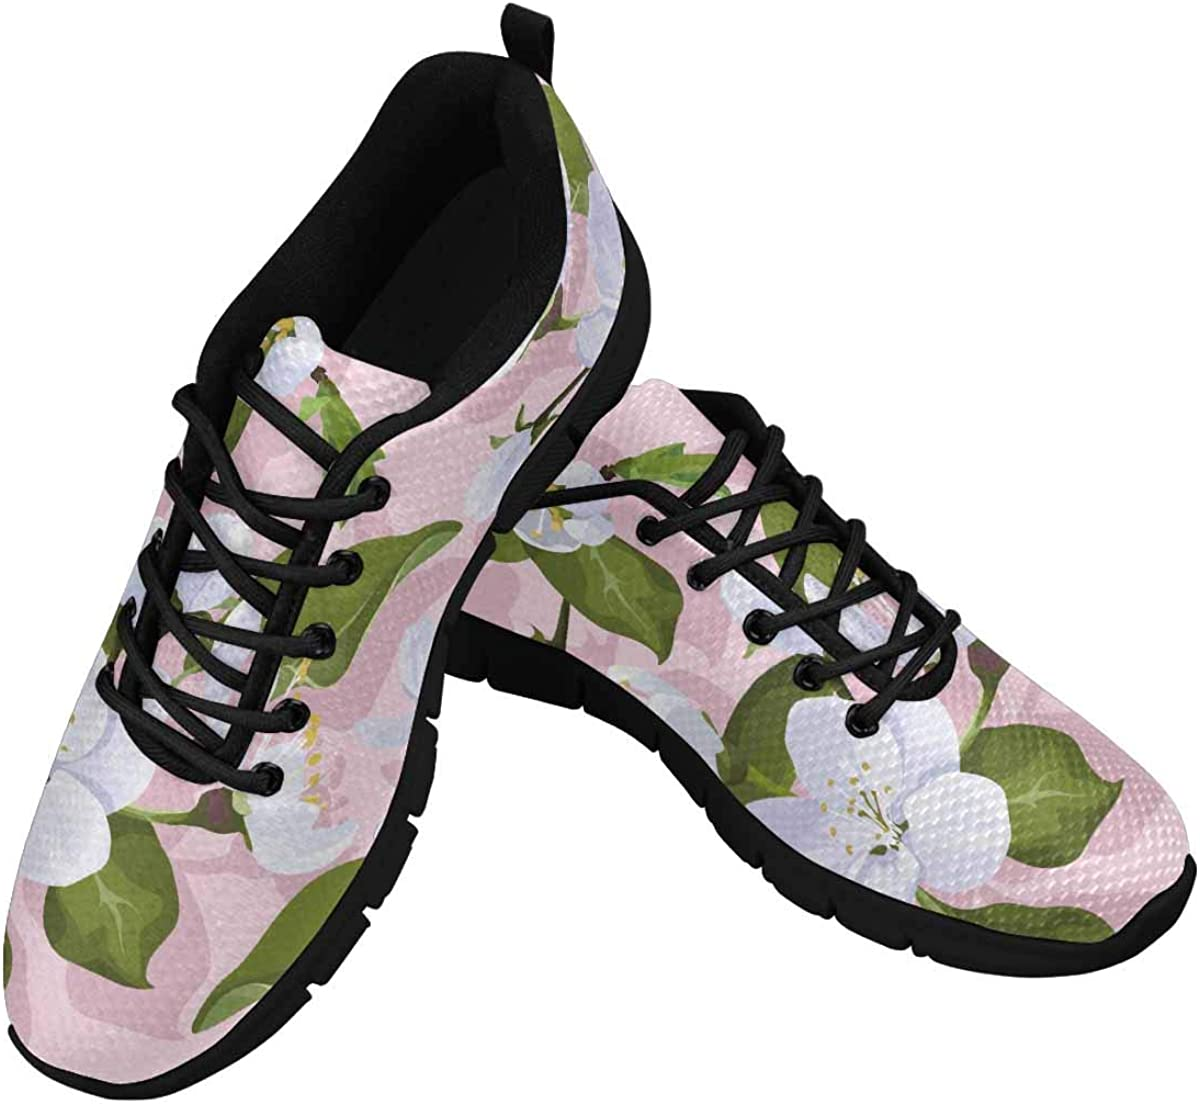 INTERESTPRINT Spring Apple Blossom Women's Running Shoes Mesh Breathable Sports Casual Shoes